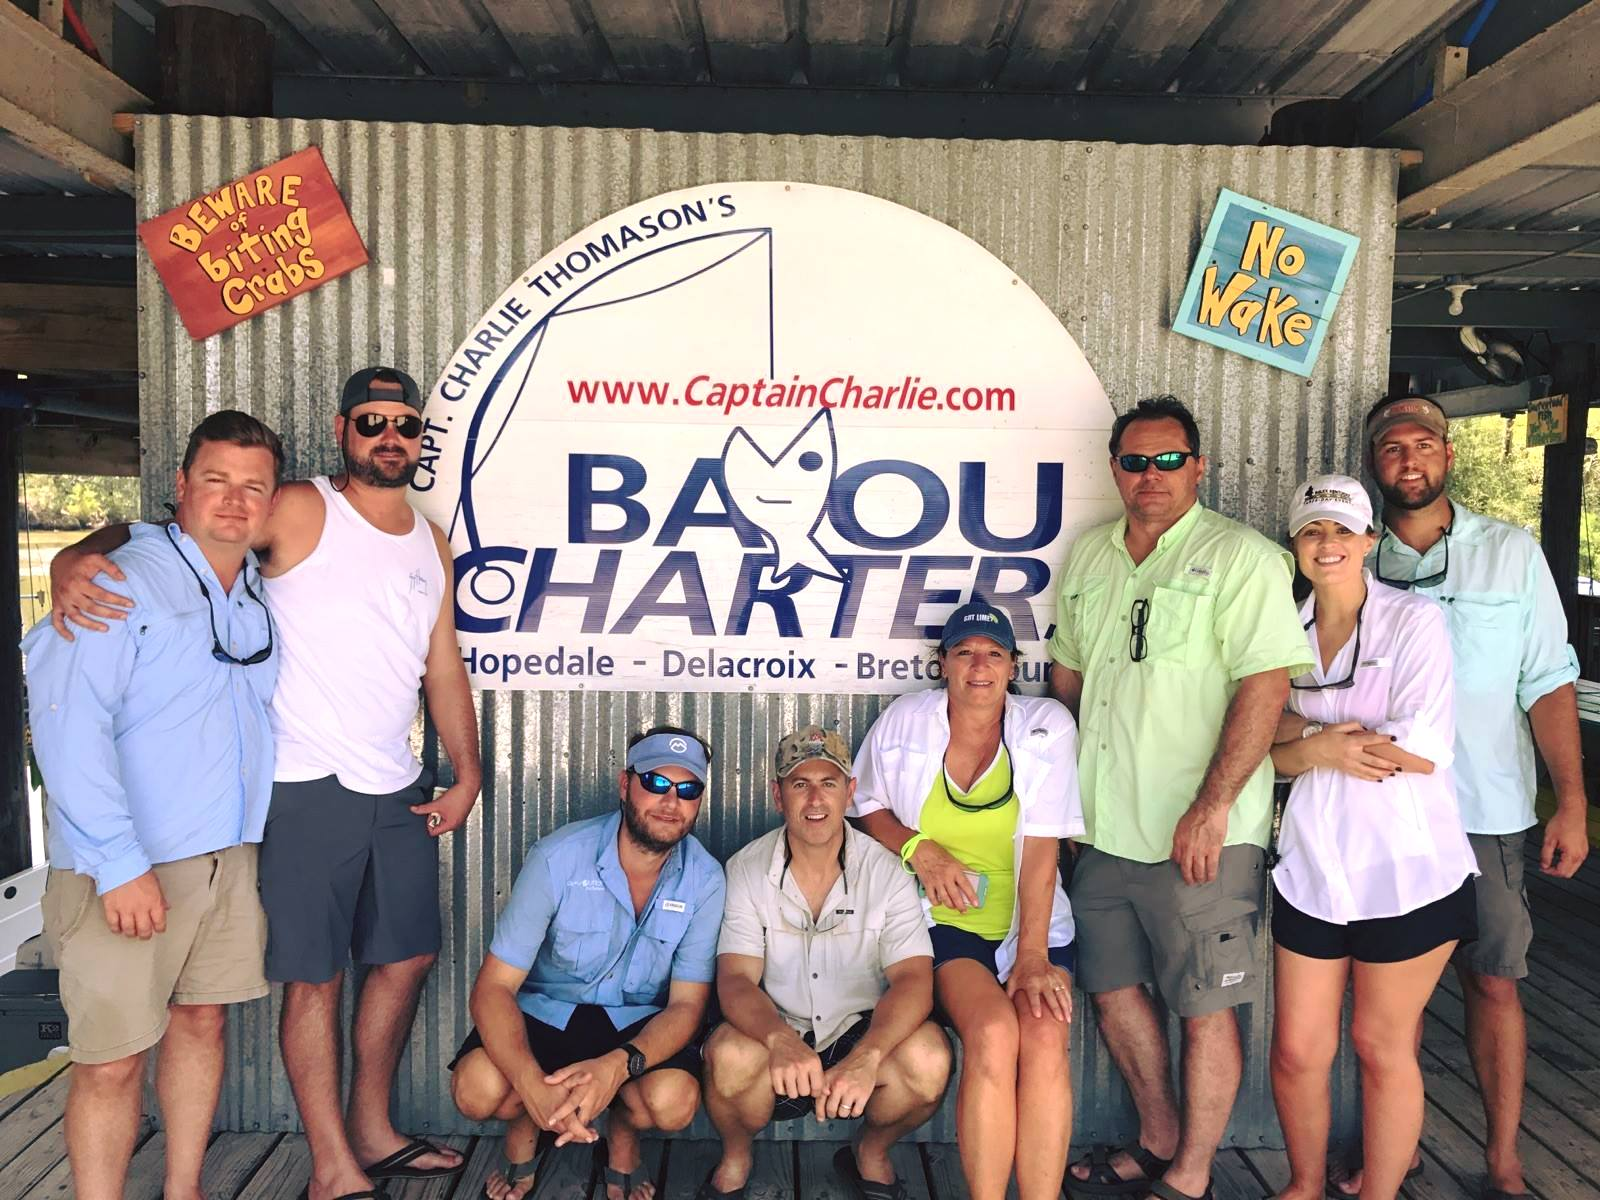 July 26 - Many lips were ripped with Bayou Charters in Hopedale, LA.